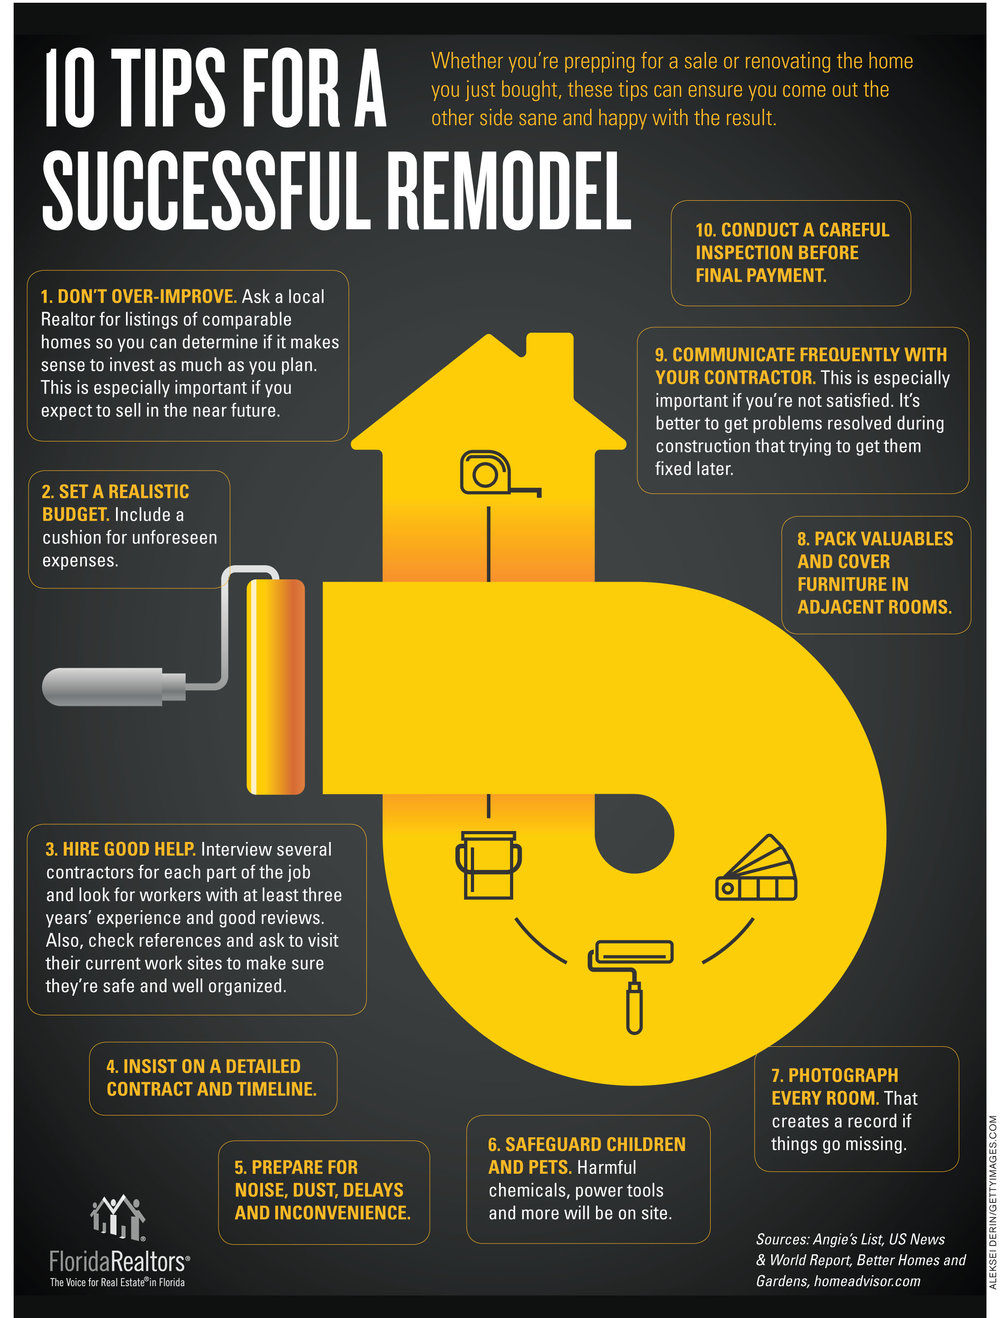 10 tips for a successful remodel.jpg